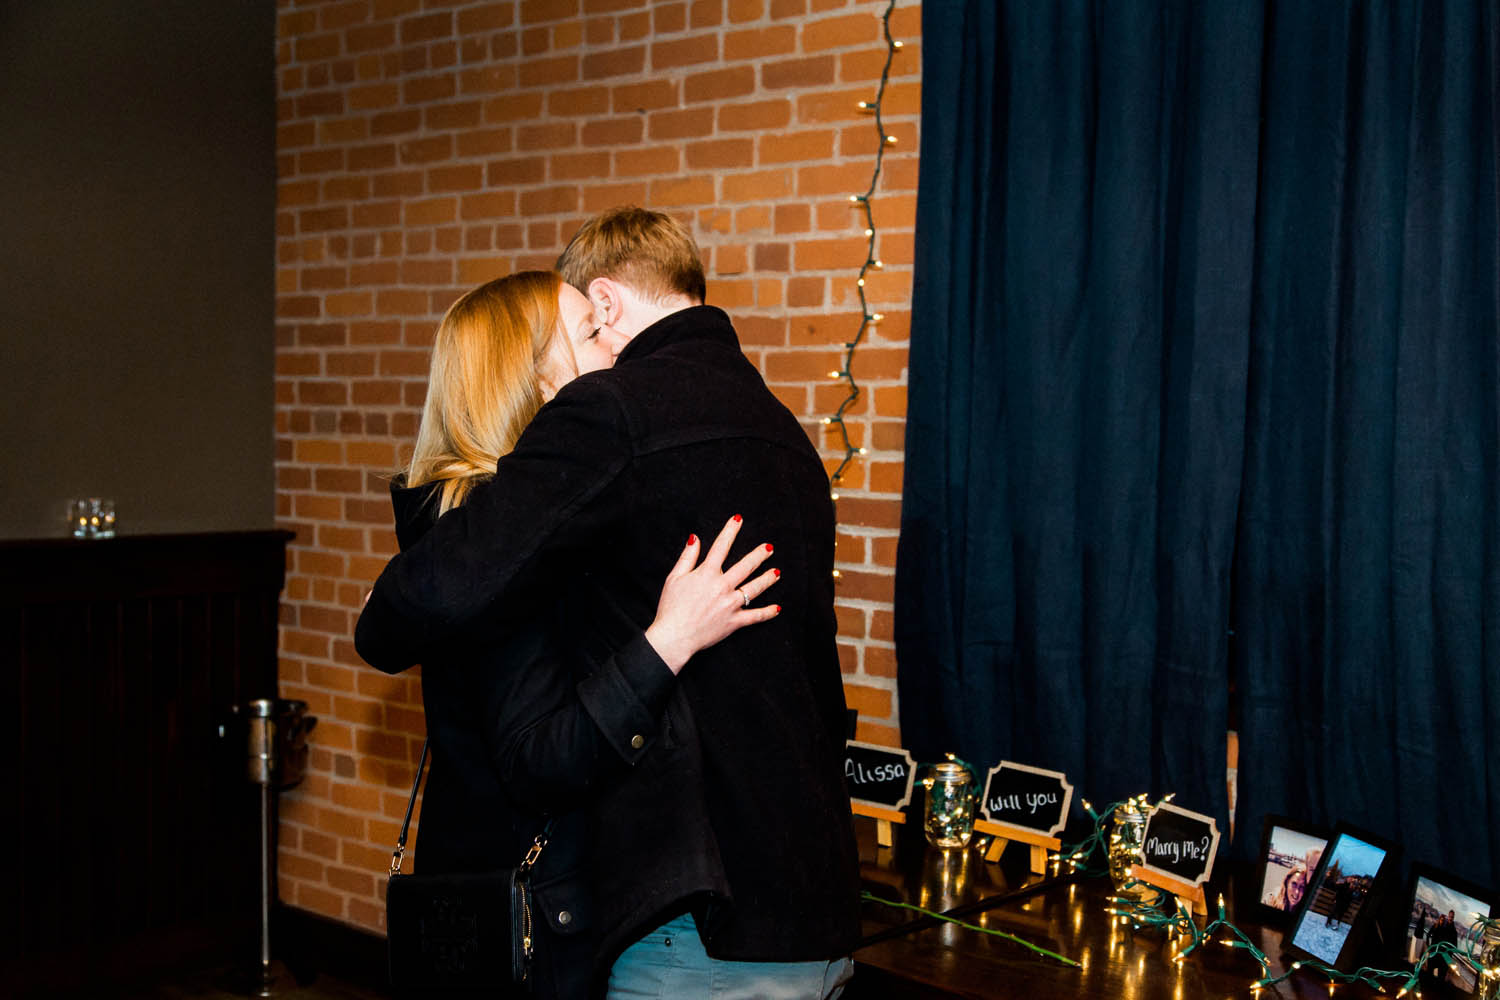 proposal-photos-minneapolis-bernadette-pollard-0016.jpg